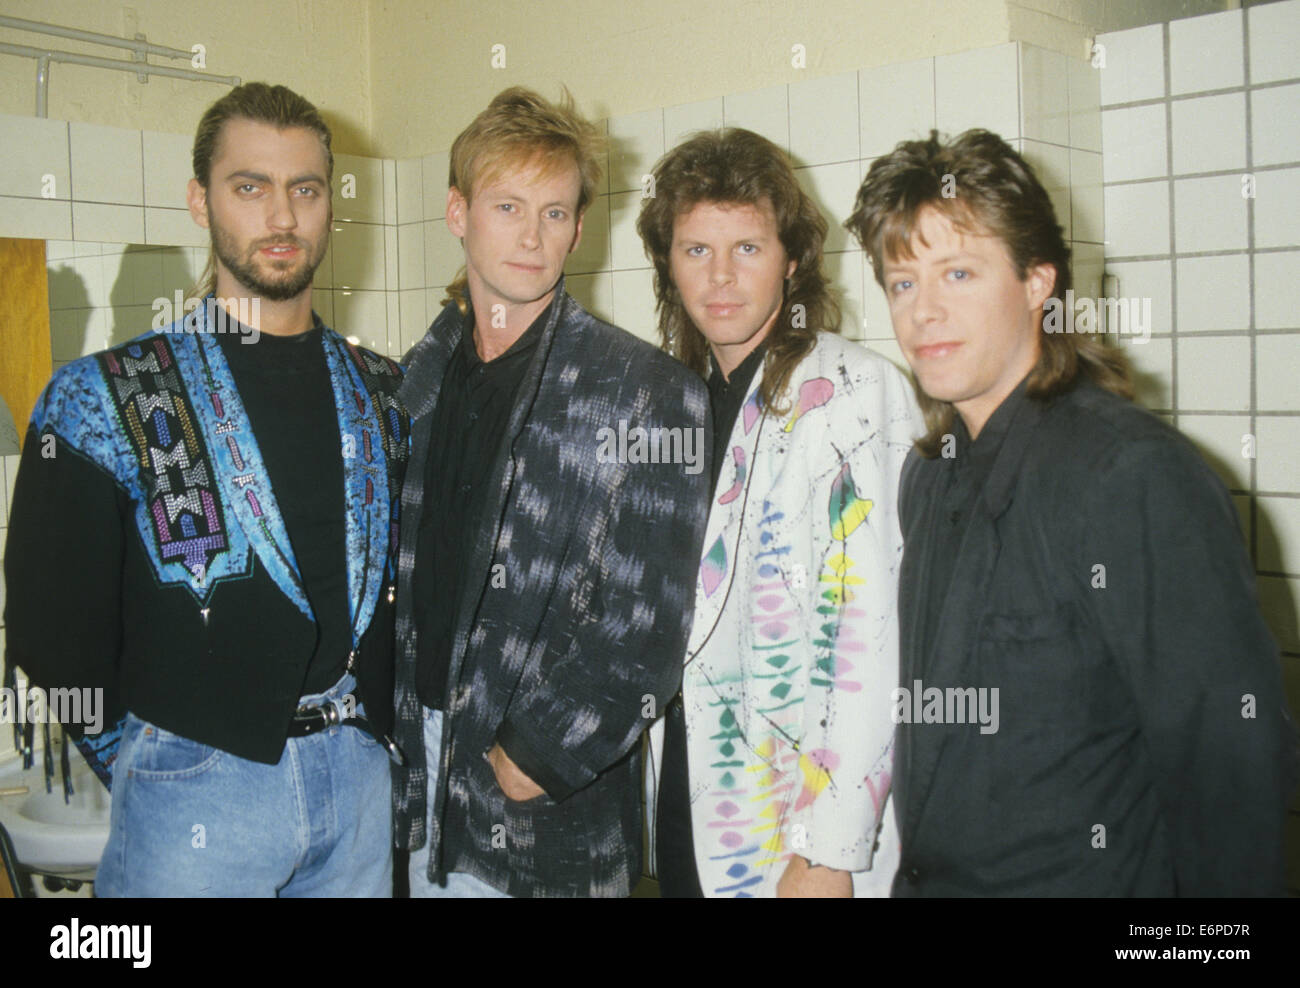 MR MISTER  US rock group about 1986. Photo Rudi Reiner - Stock Image